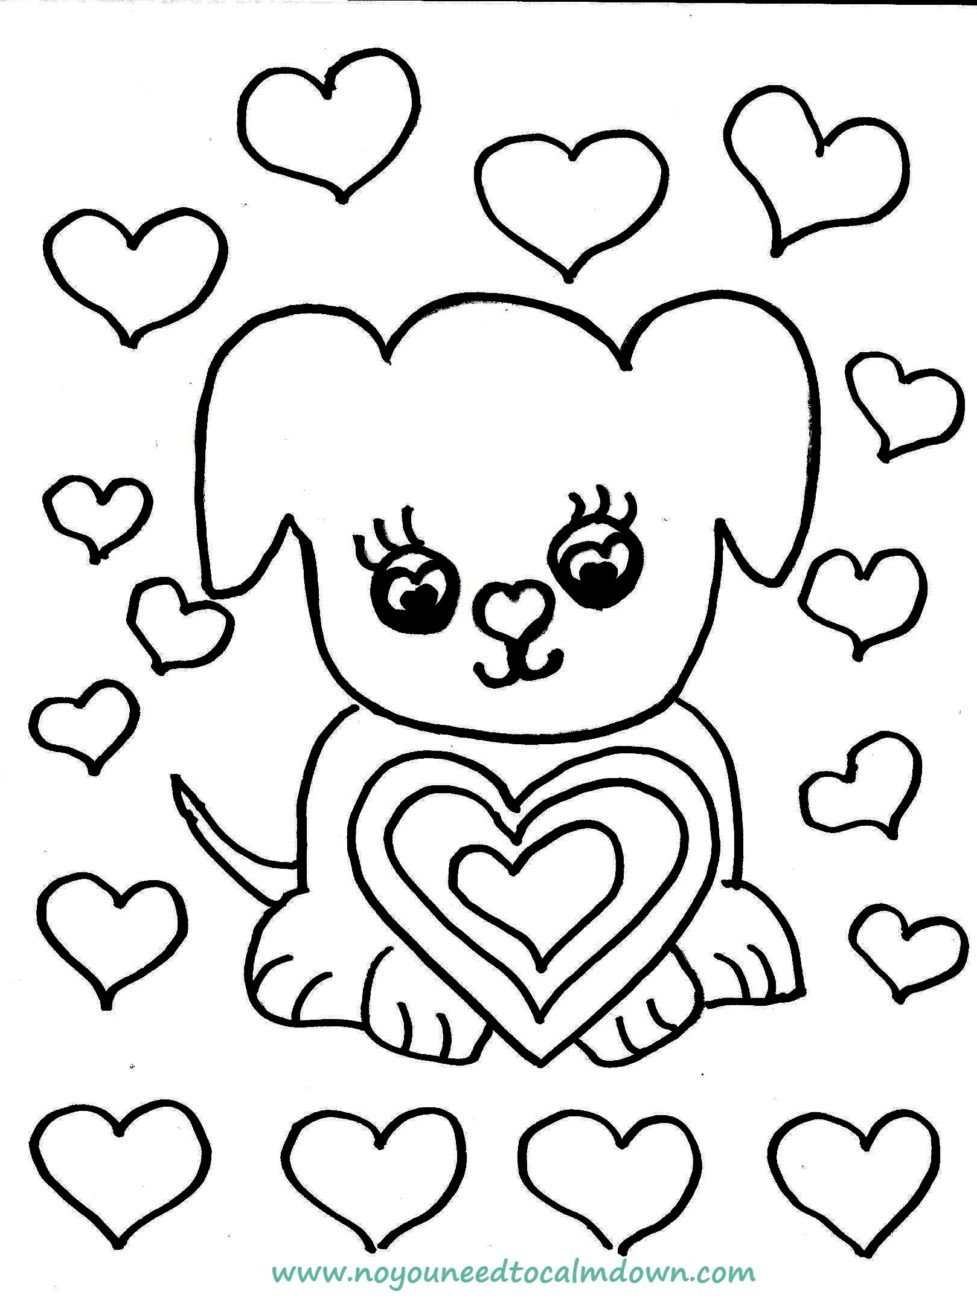 Coloring Pages For Boys Calm  Cute Dog Valentine s Day Coloring Page Free Printable